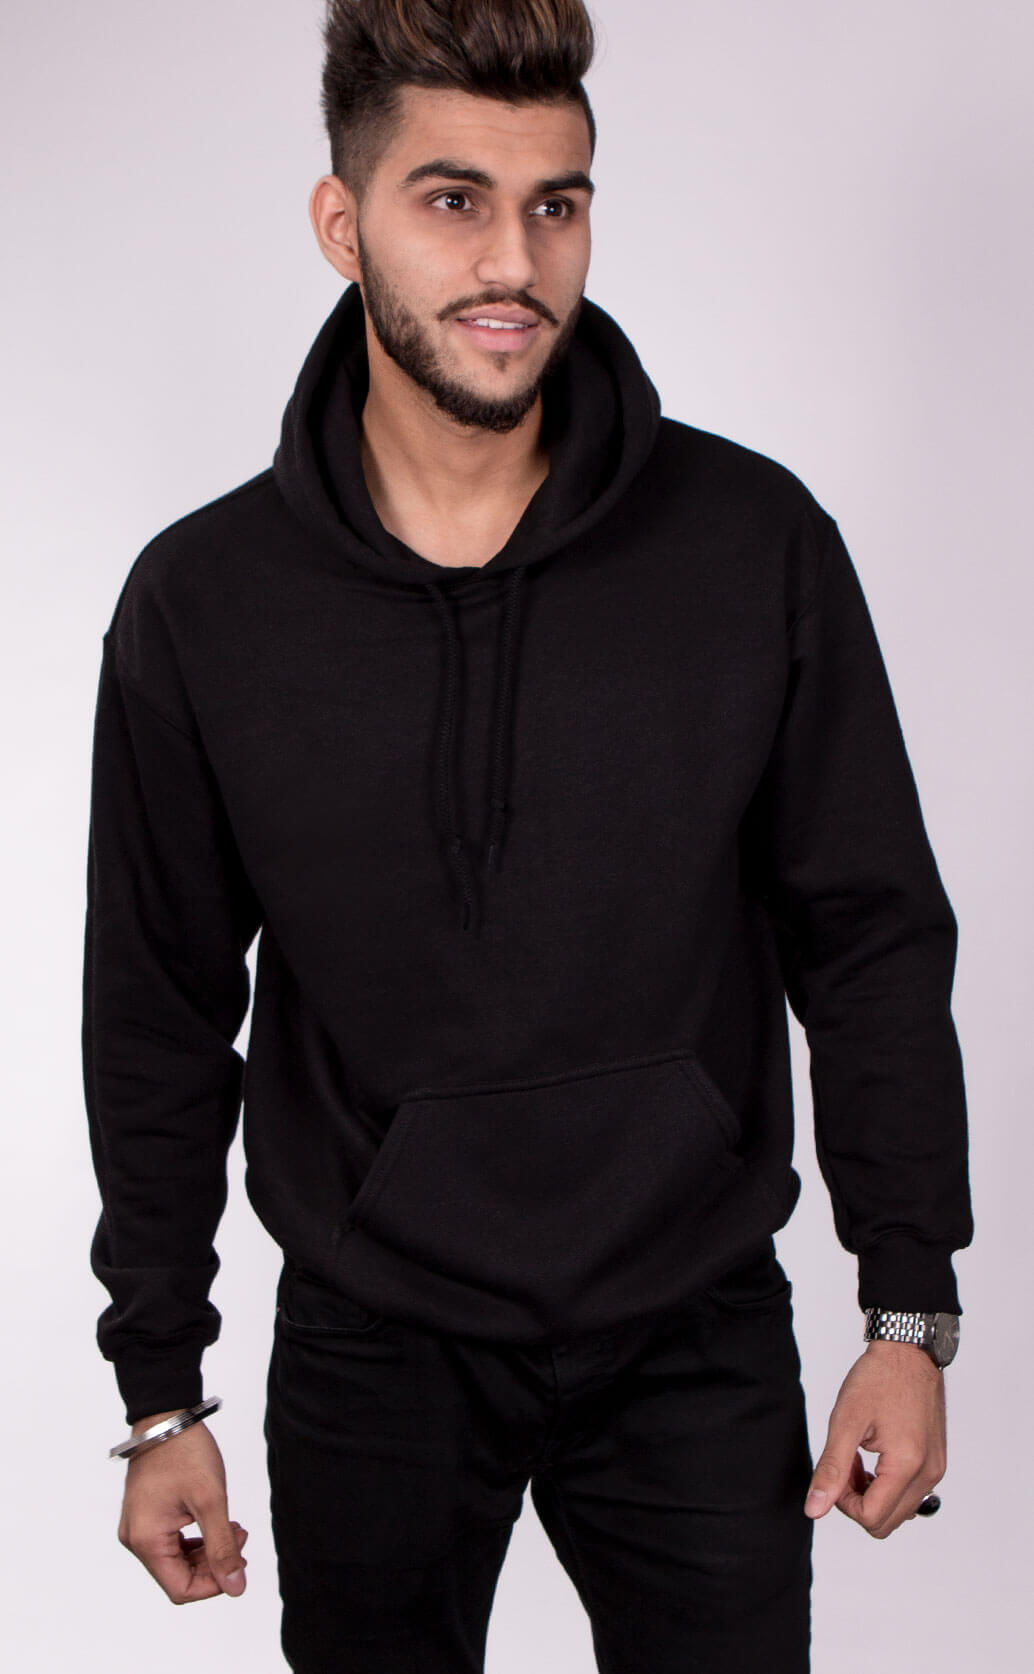 Size guide image for Unisex Hoodie mens shirt type. Model is male and dressed in black